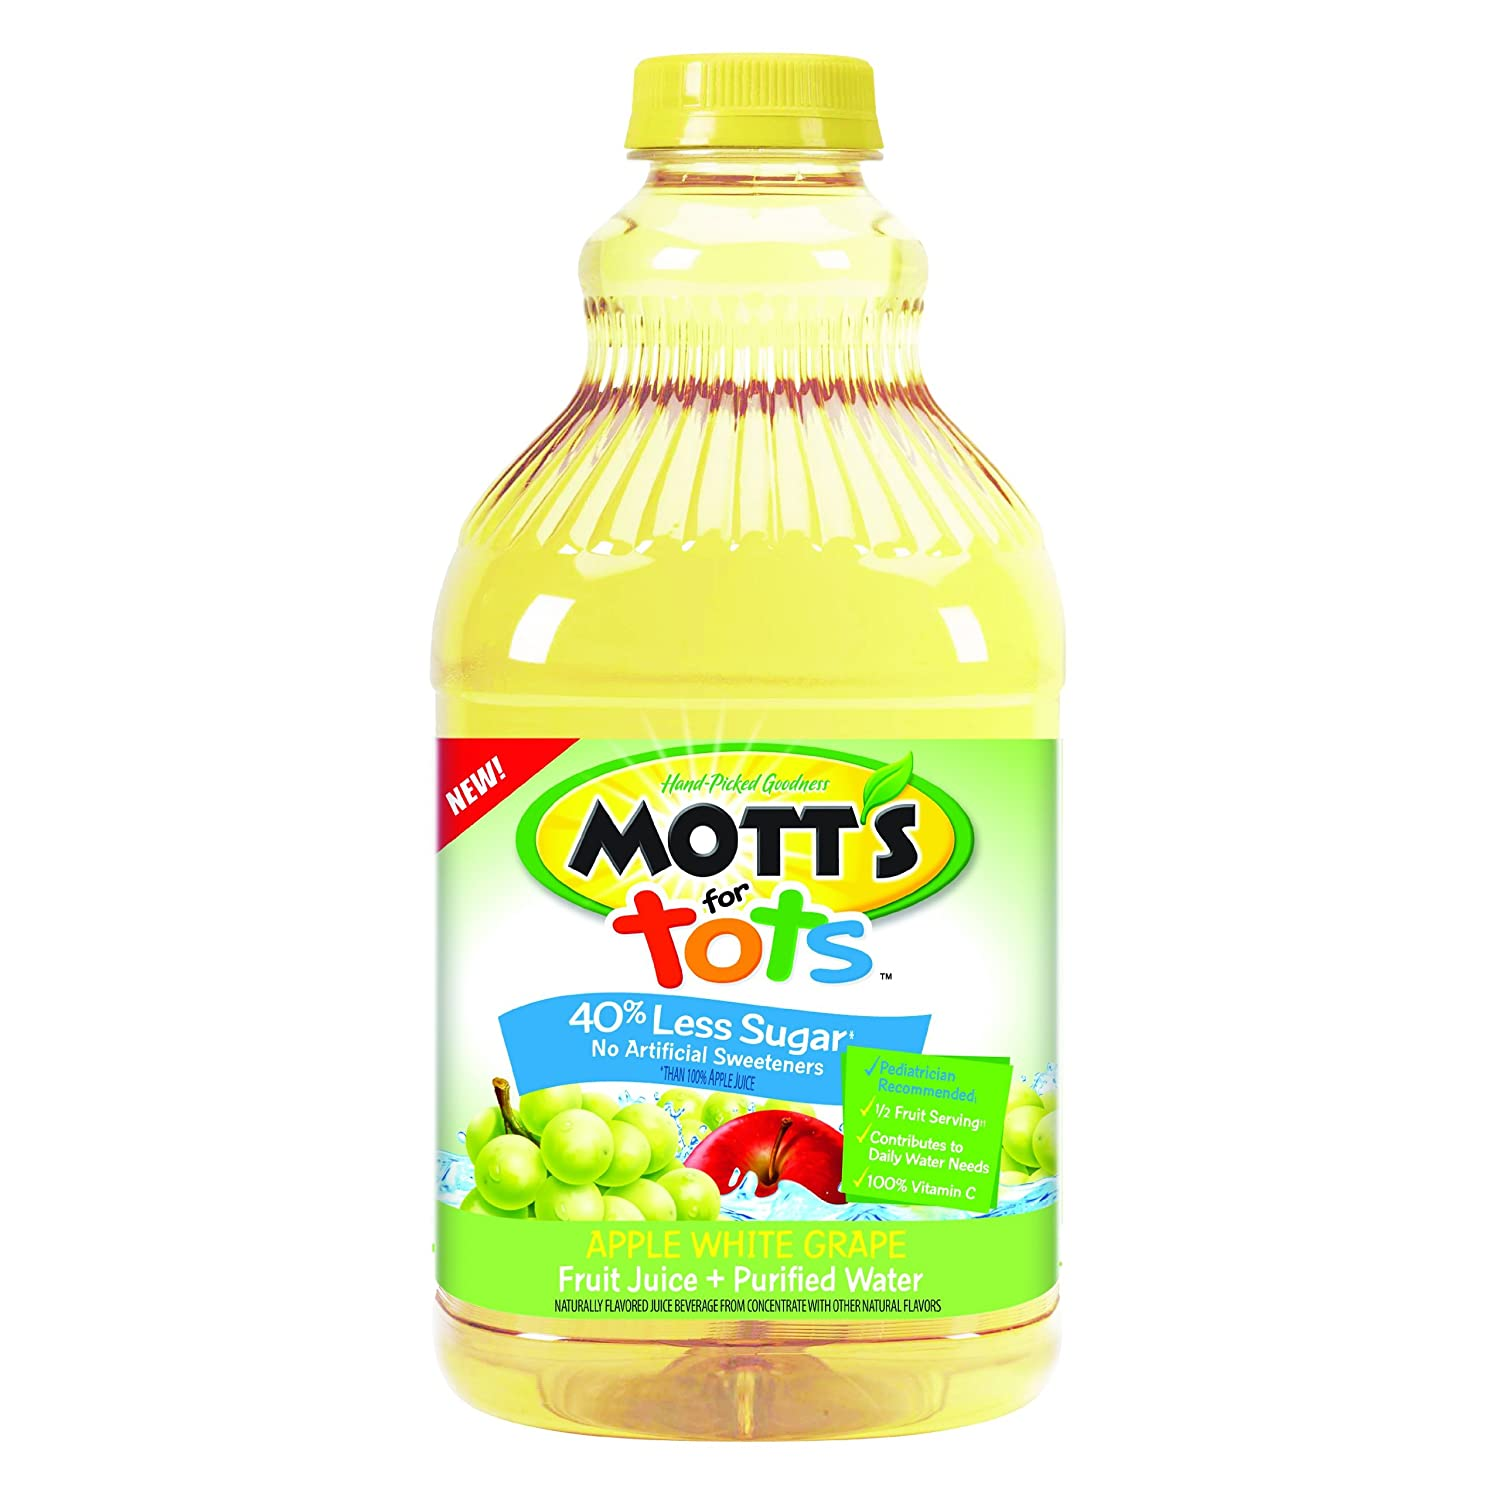 Possible Mott's for Tots FREE Sample for Vocalpoint Members: becuo.com/motts-for-tots-logo